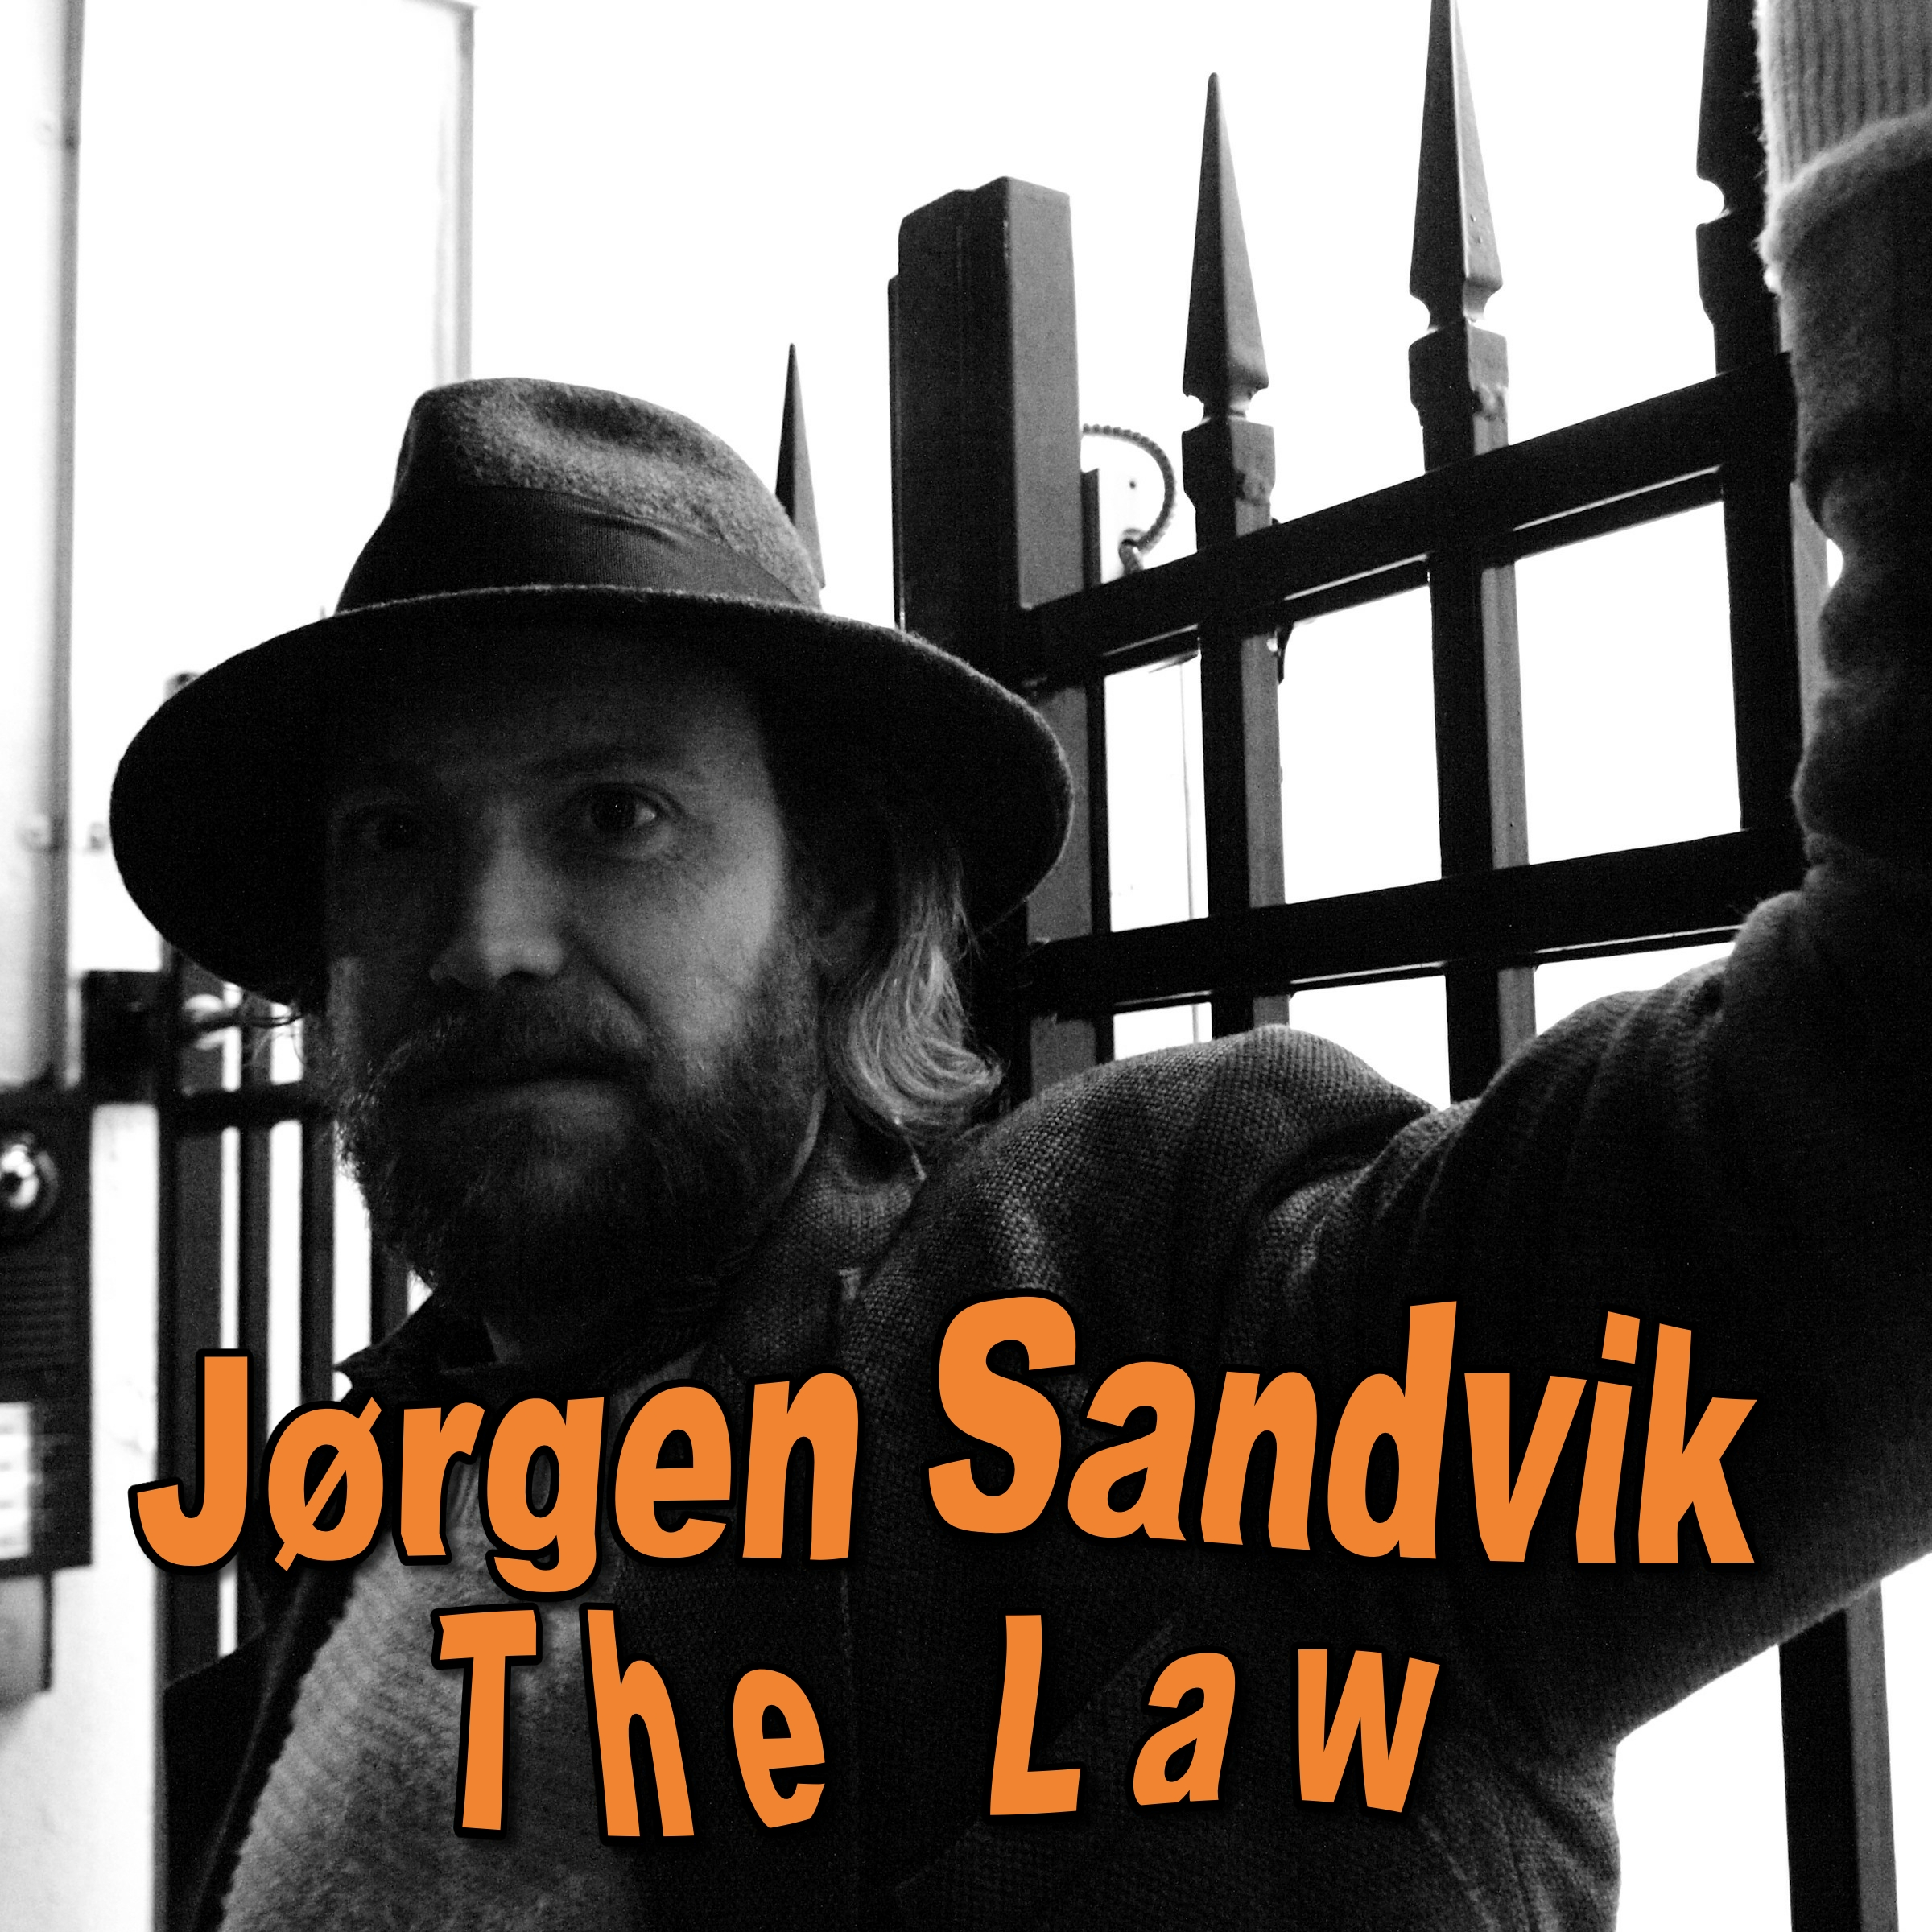 Album art: Jørgen Sandvik -The Law